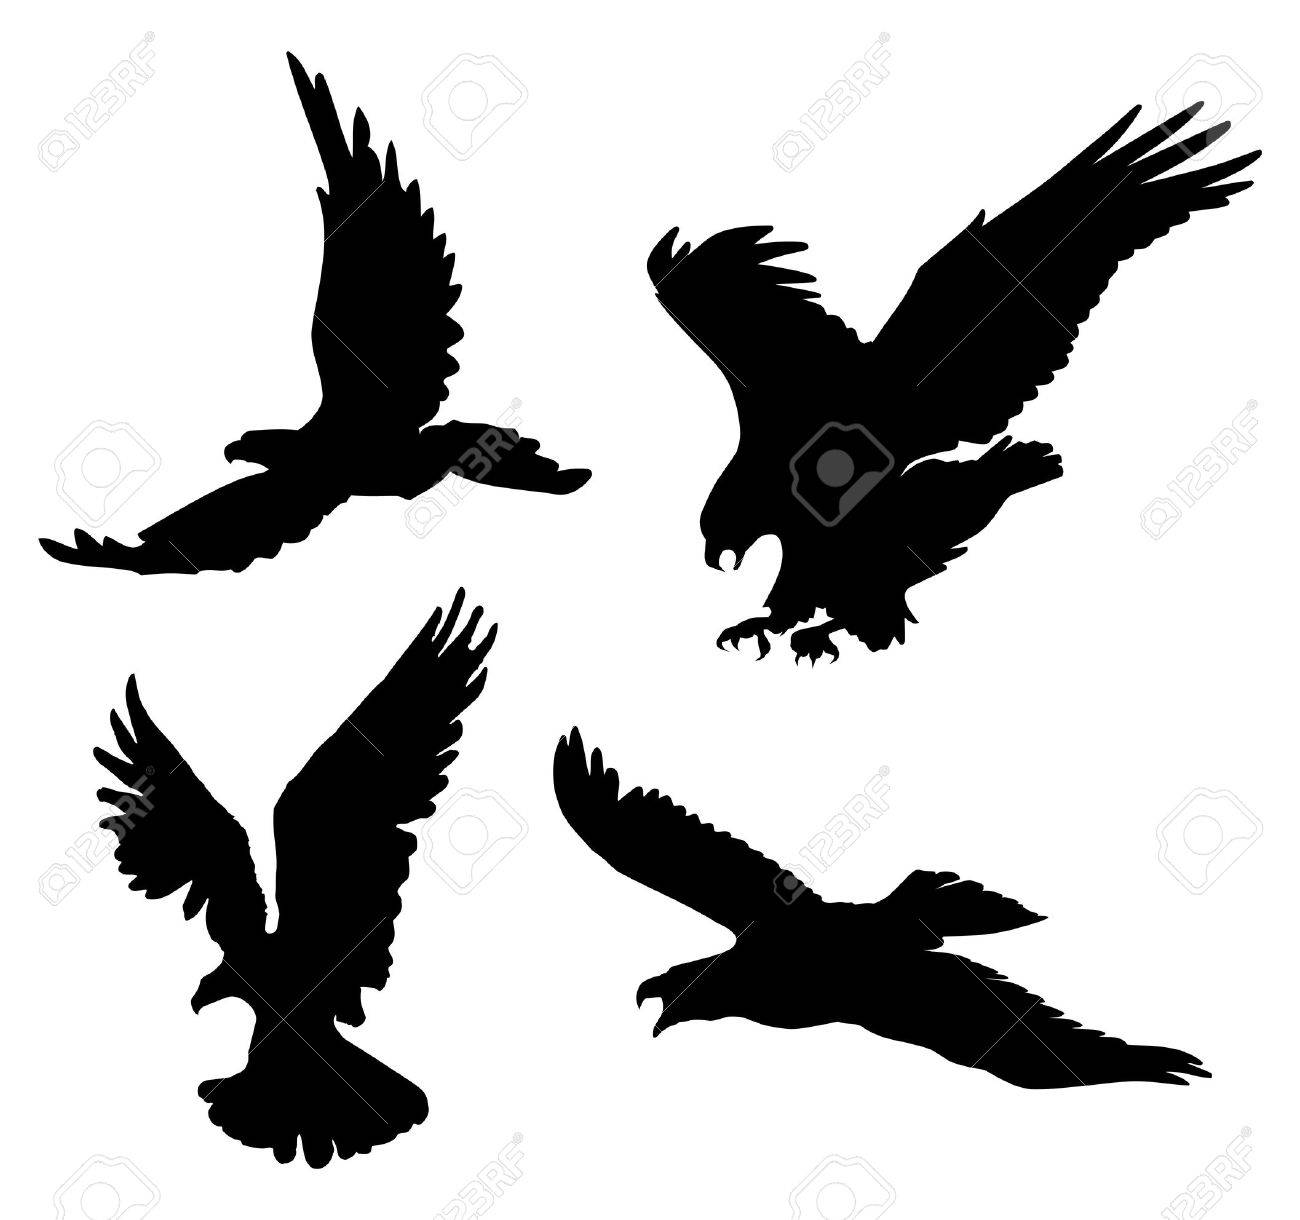 Flying eagles silhouettes on white background, illustration. Stock Vector - 8877343